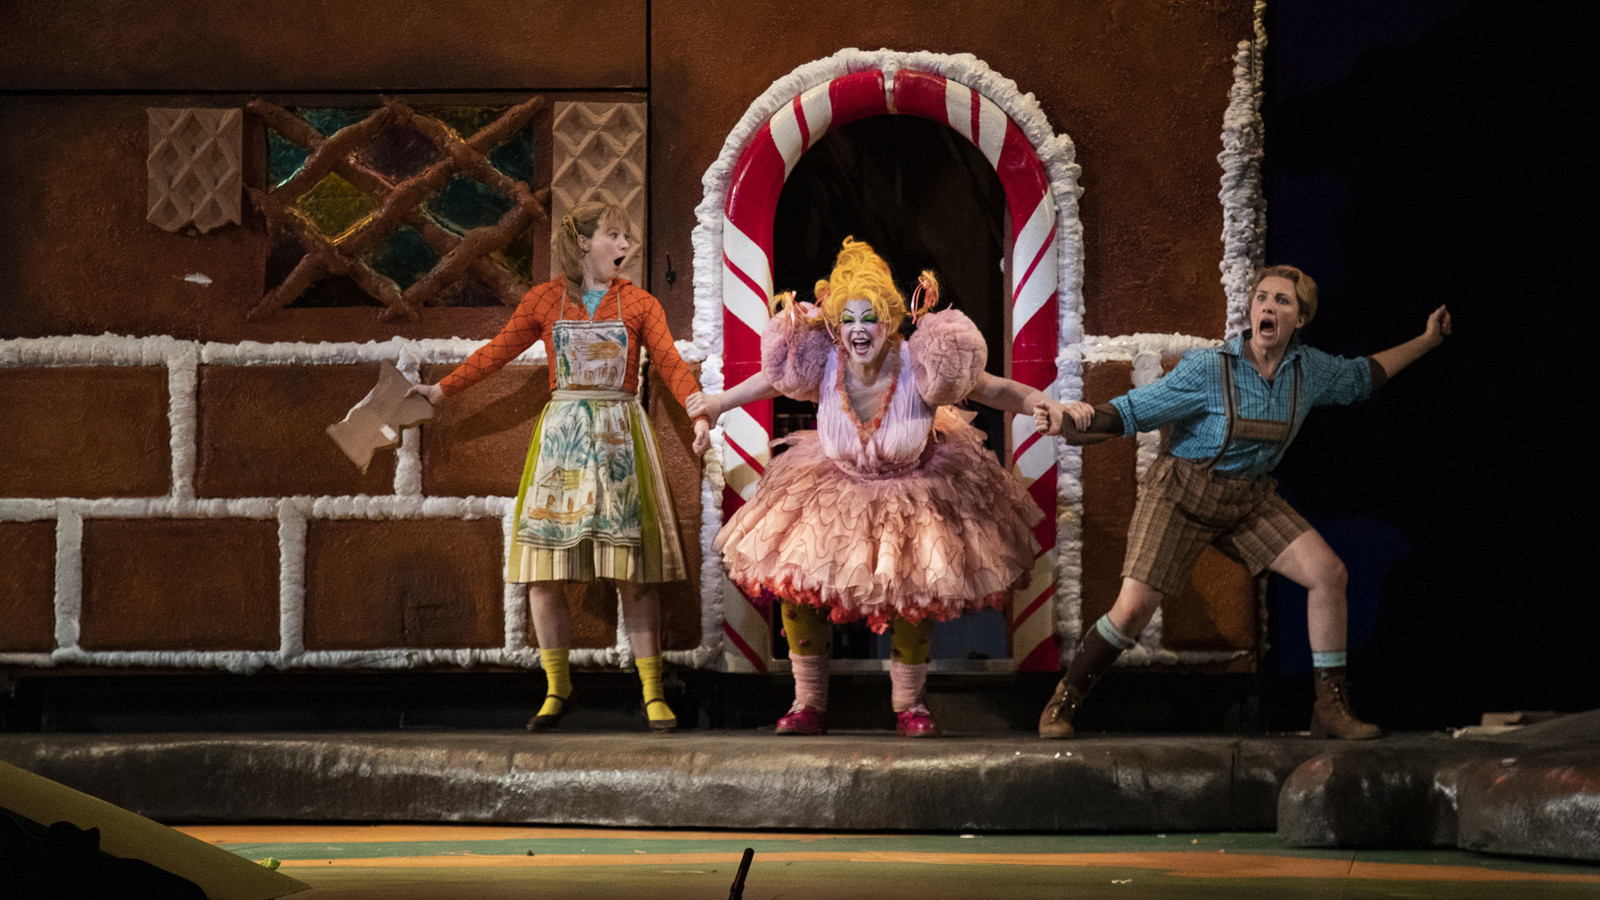 Review: L.A. Opera's colorful reprise of Humperdinck's 'Hansel and Gretel'